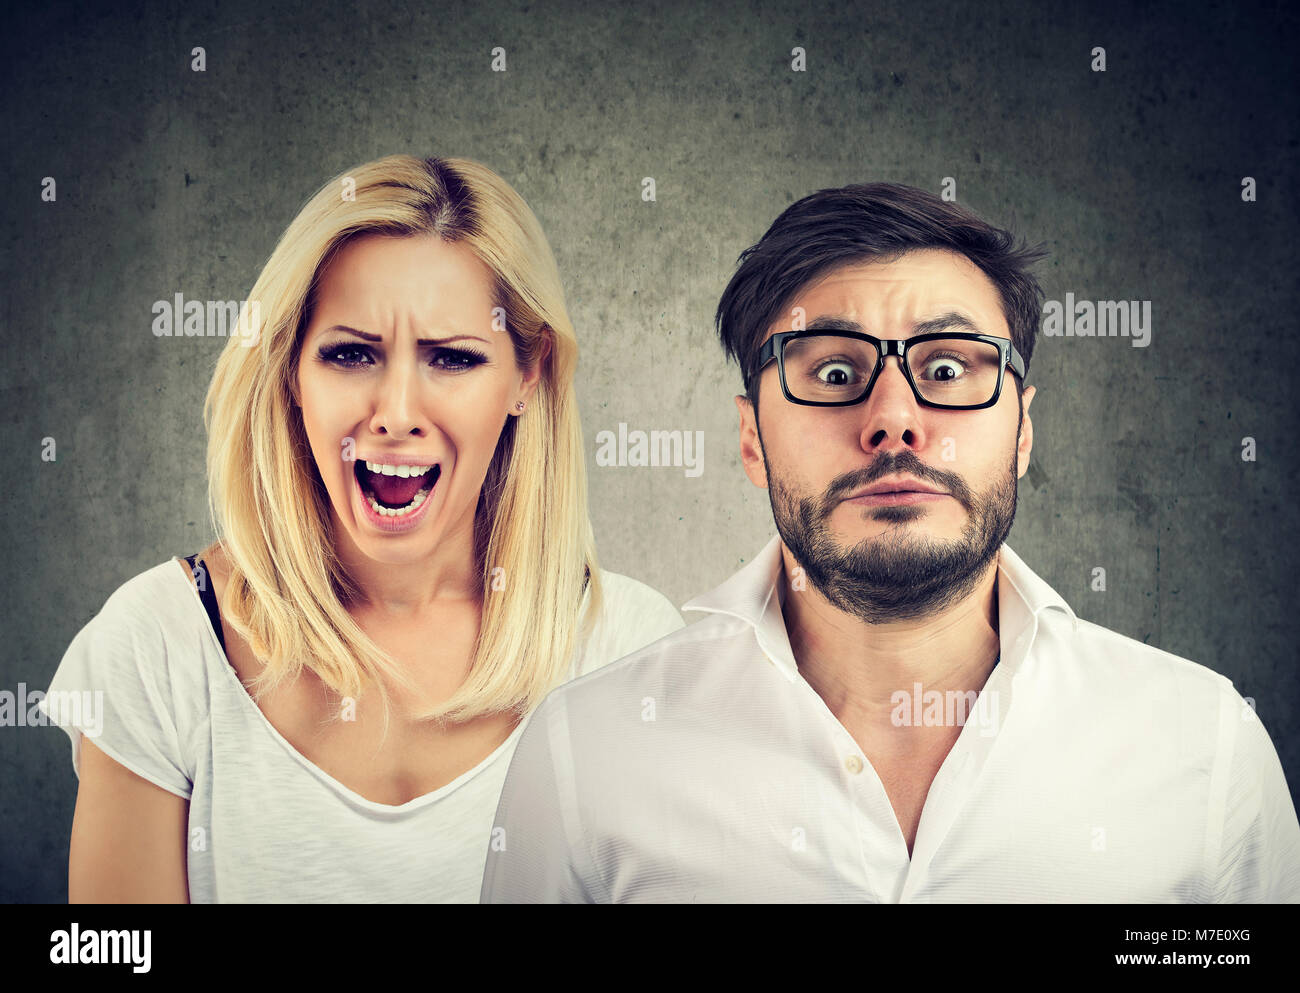 Angry mad woman screaming and fearful stressed man - Stock Image